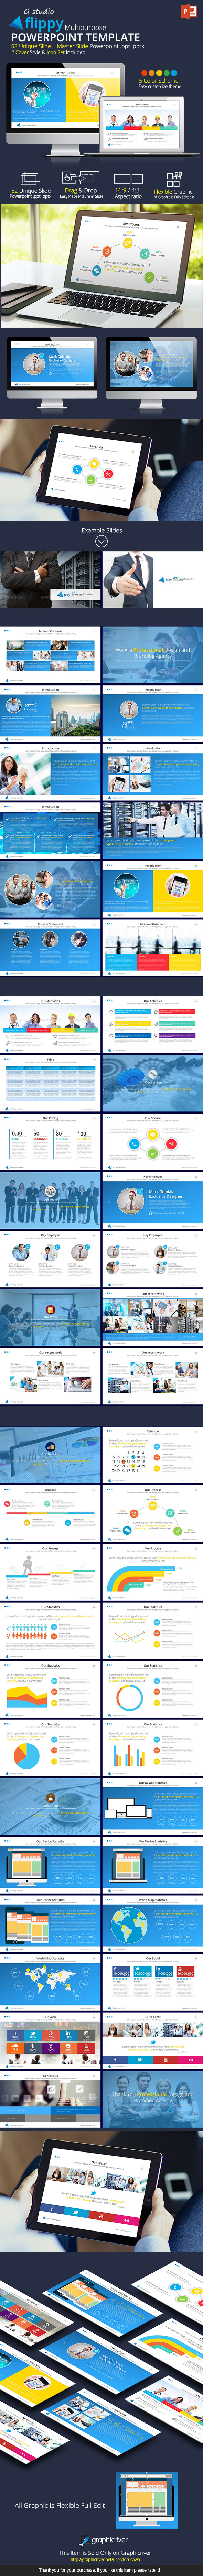 Flippy Powerpoint Template - Business PowerPoint Templates